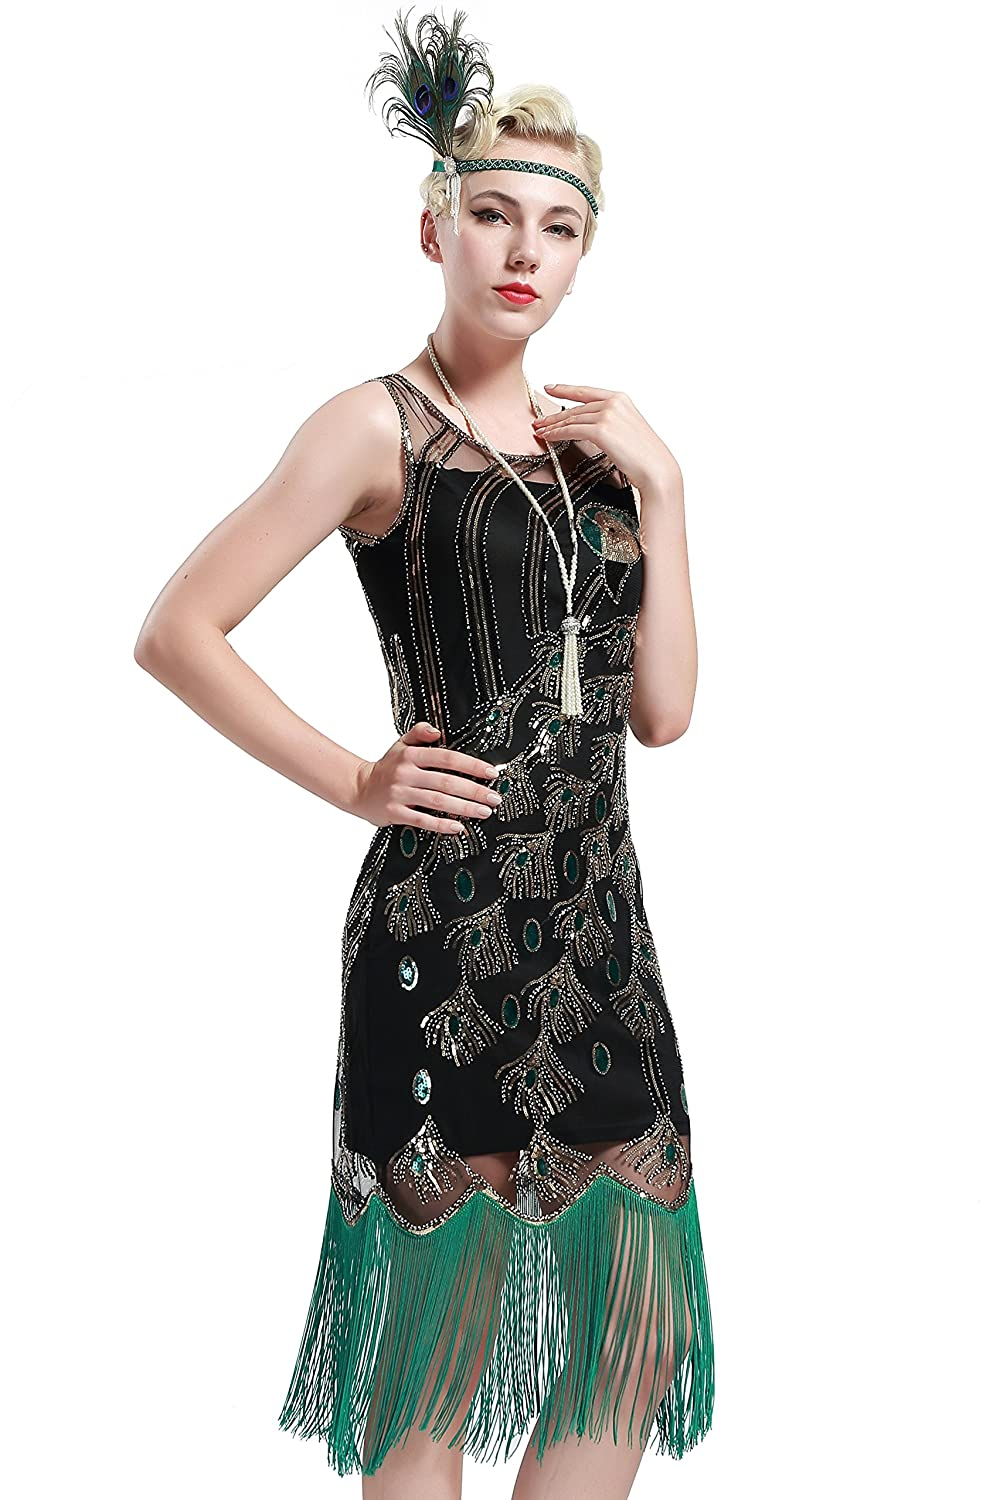 Gangster Costumes & Outfits | Women's and Men's BABEYOND 20s Vintage Peacock Sequin Fringed Party Flapper Dress $38.99 AT vintagedancer.com